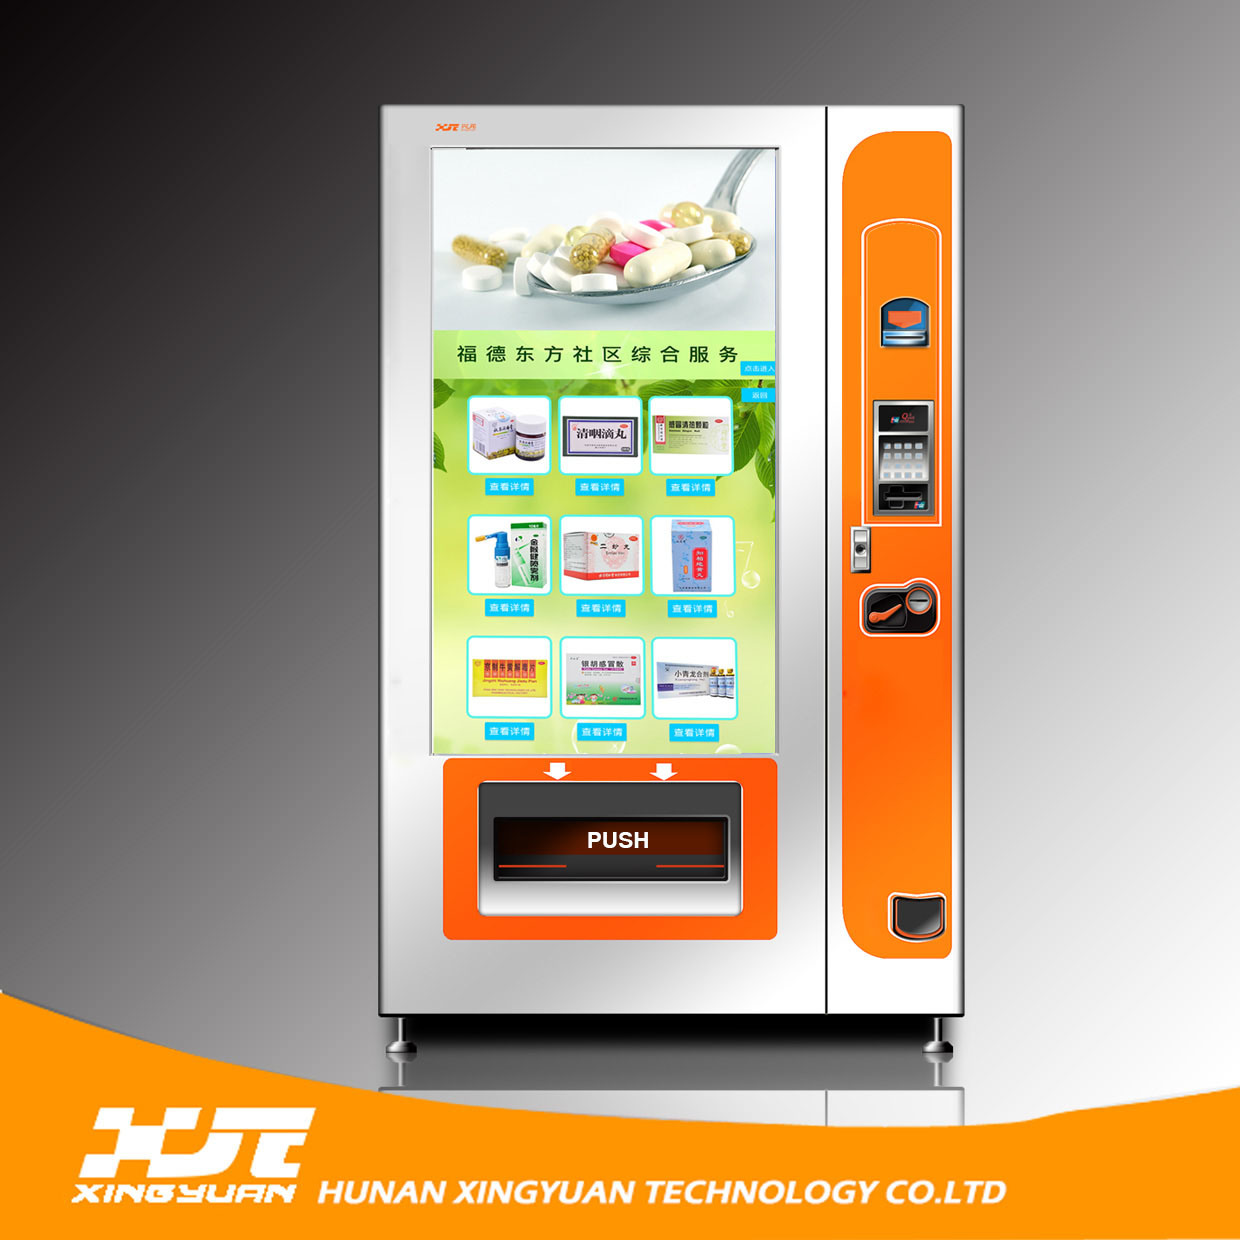 Large Touch Screen >> Hot Item Full Media Display Medicine Pharmacy Vending Machine With Large Touch Screen 55 46 Available